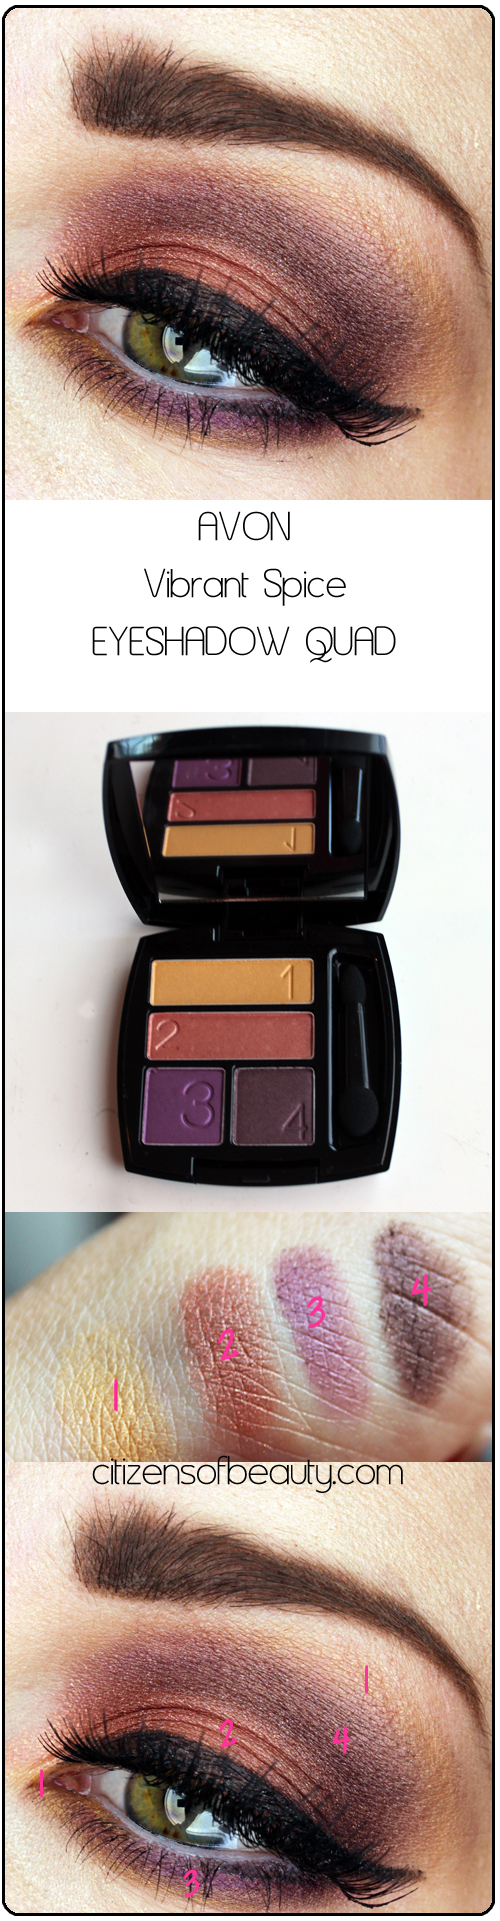 AVON_Vibrant_spice_eyeshadow_quad copy